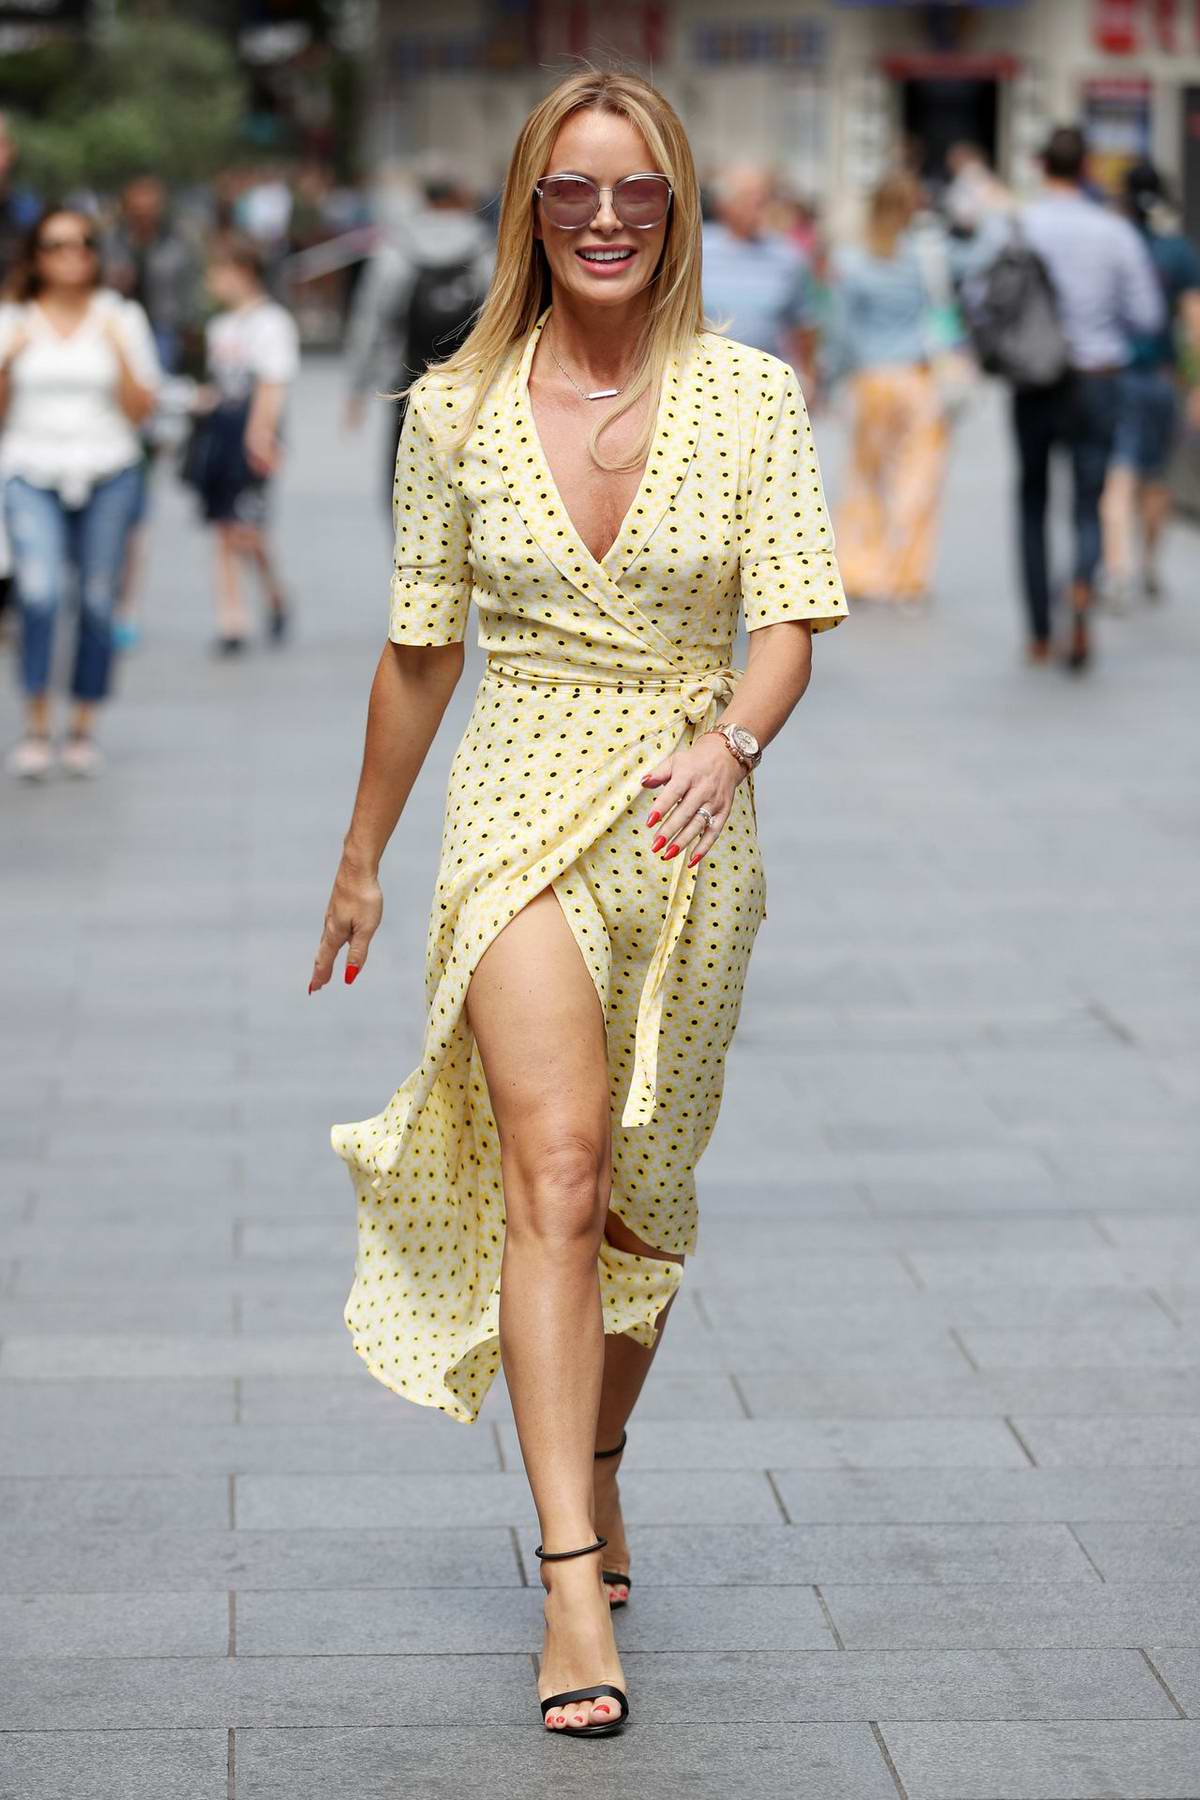 Amanda Holden flashes long legs in a yellow polka dot wrap dress while leaving Heart Radio, Global House in London, UK